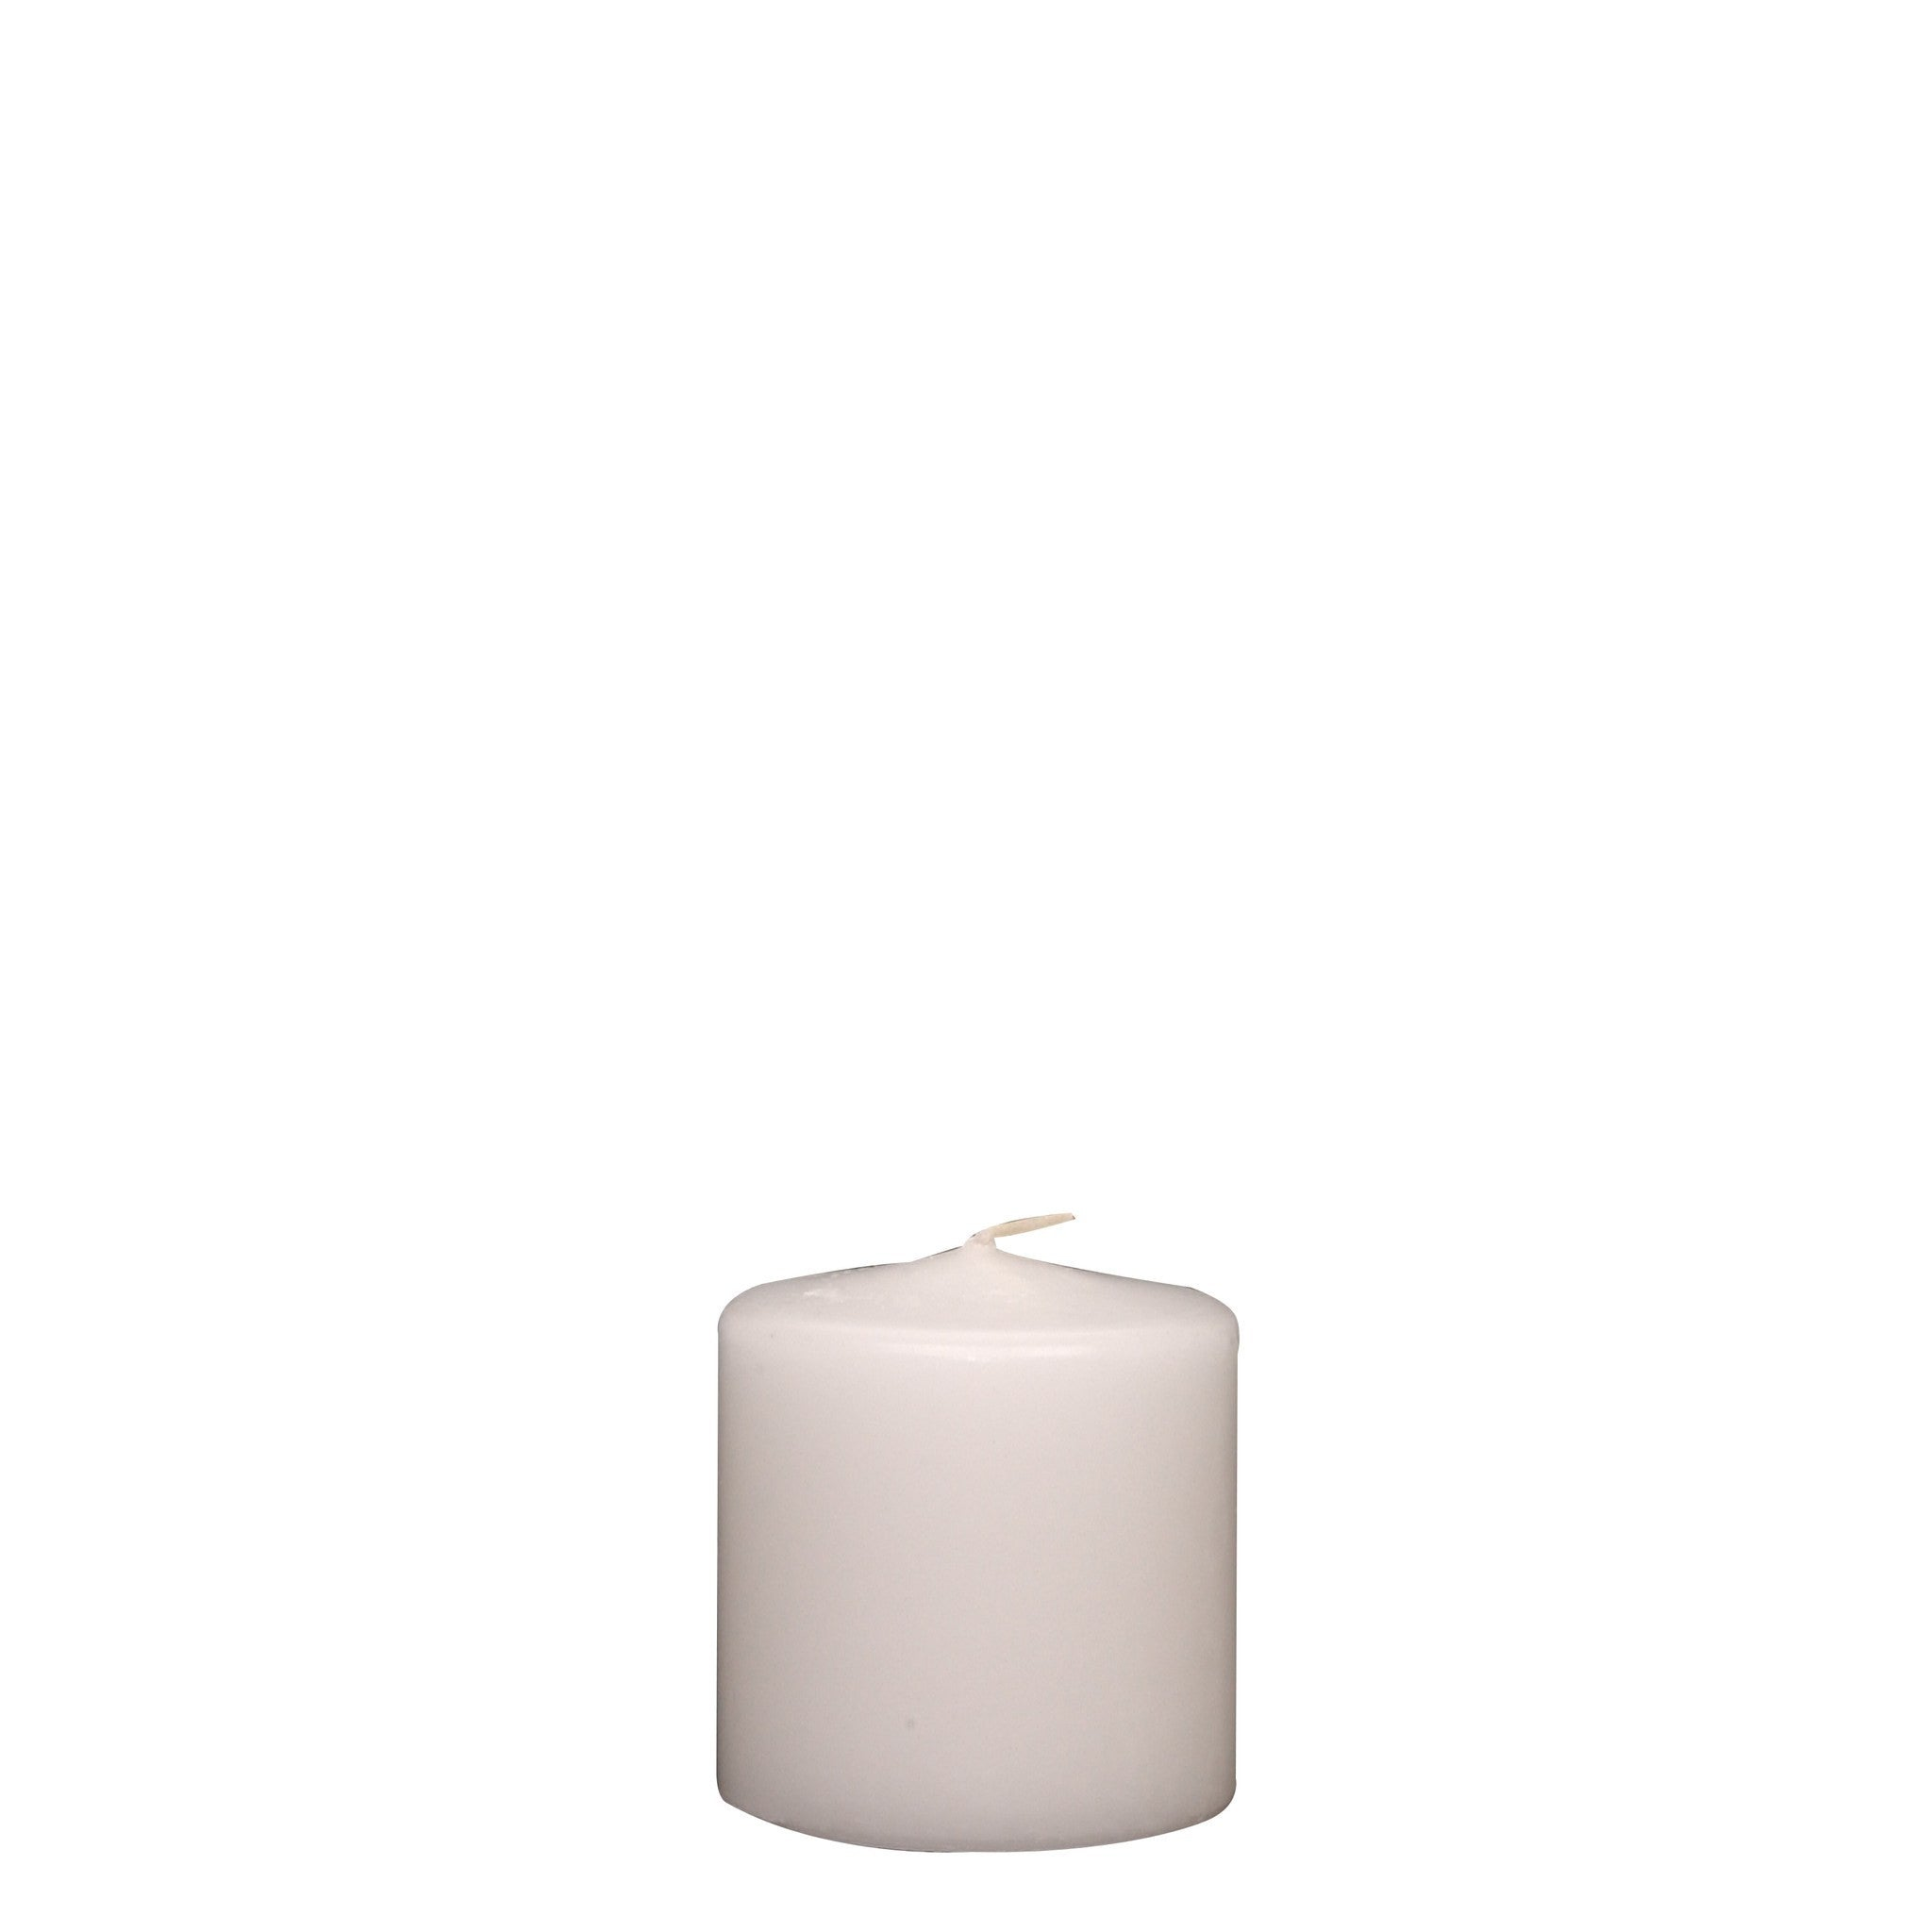 3x3 Unscented White Pillar Candle Candles Candlemart.com $ 1.99